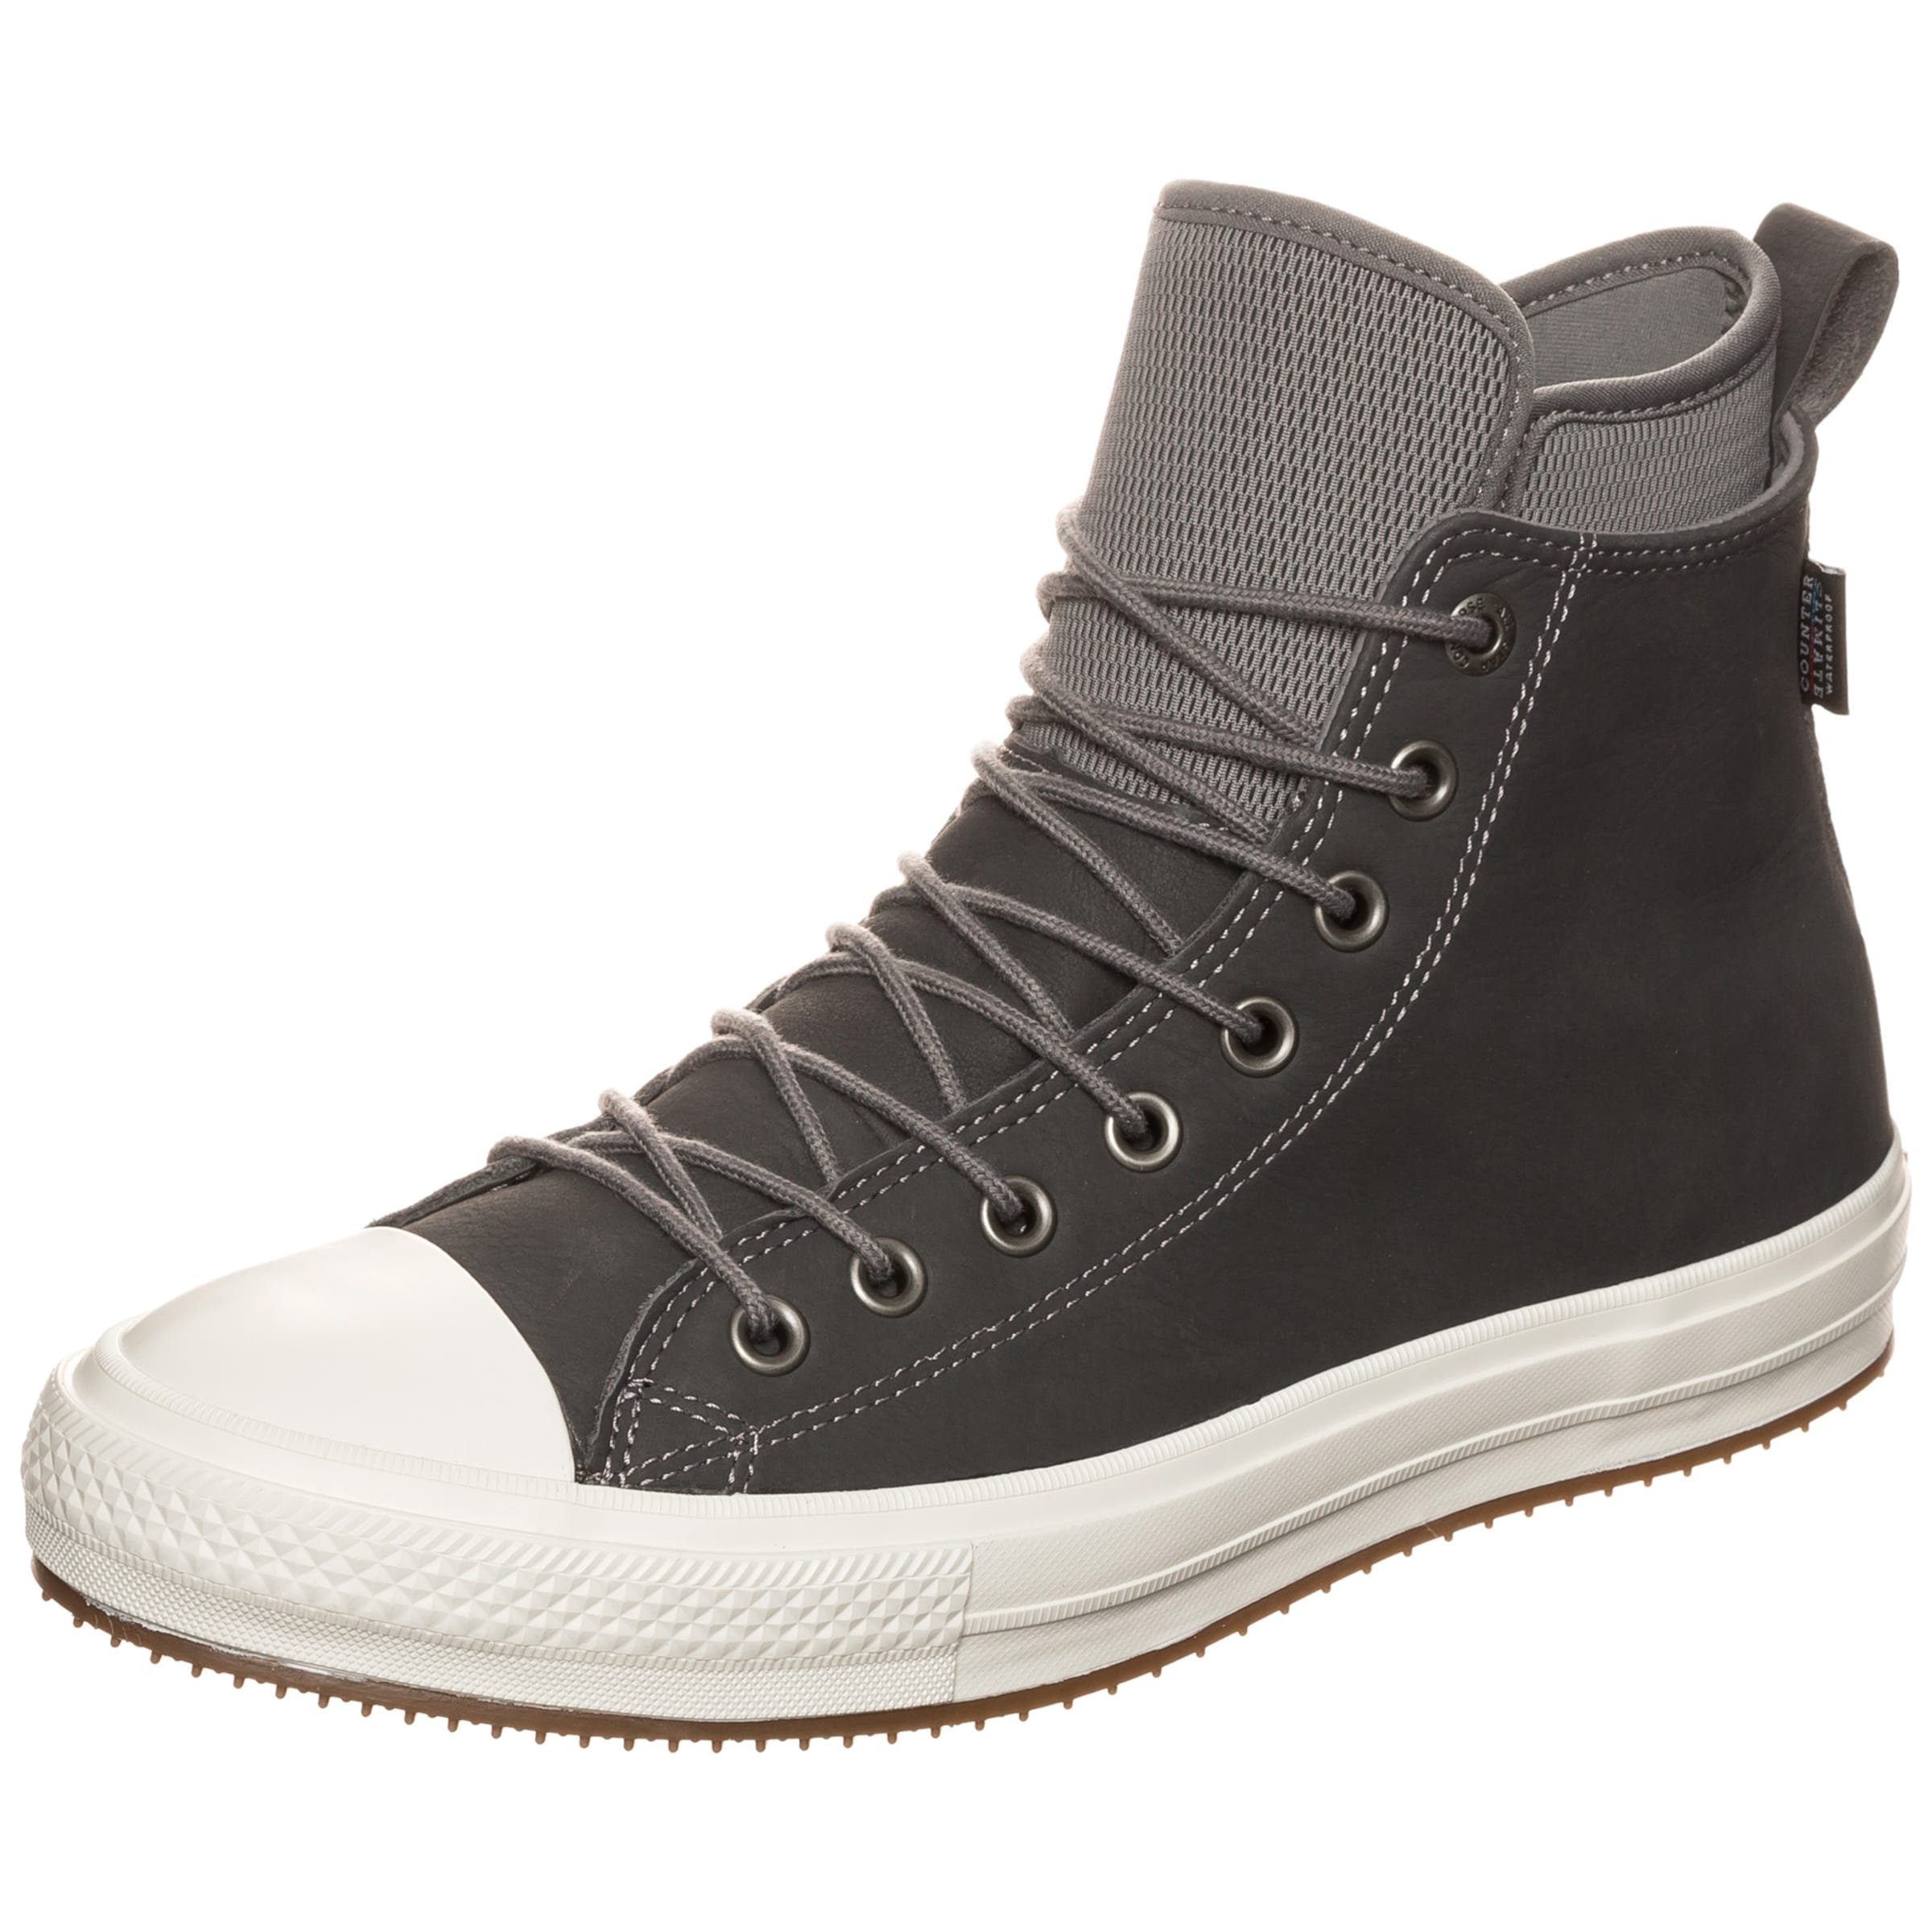 CONVERSE Chuck Taylor All Star Waterproof High Sneaker Herren